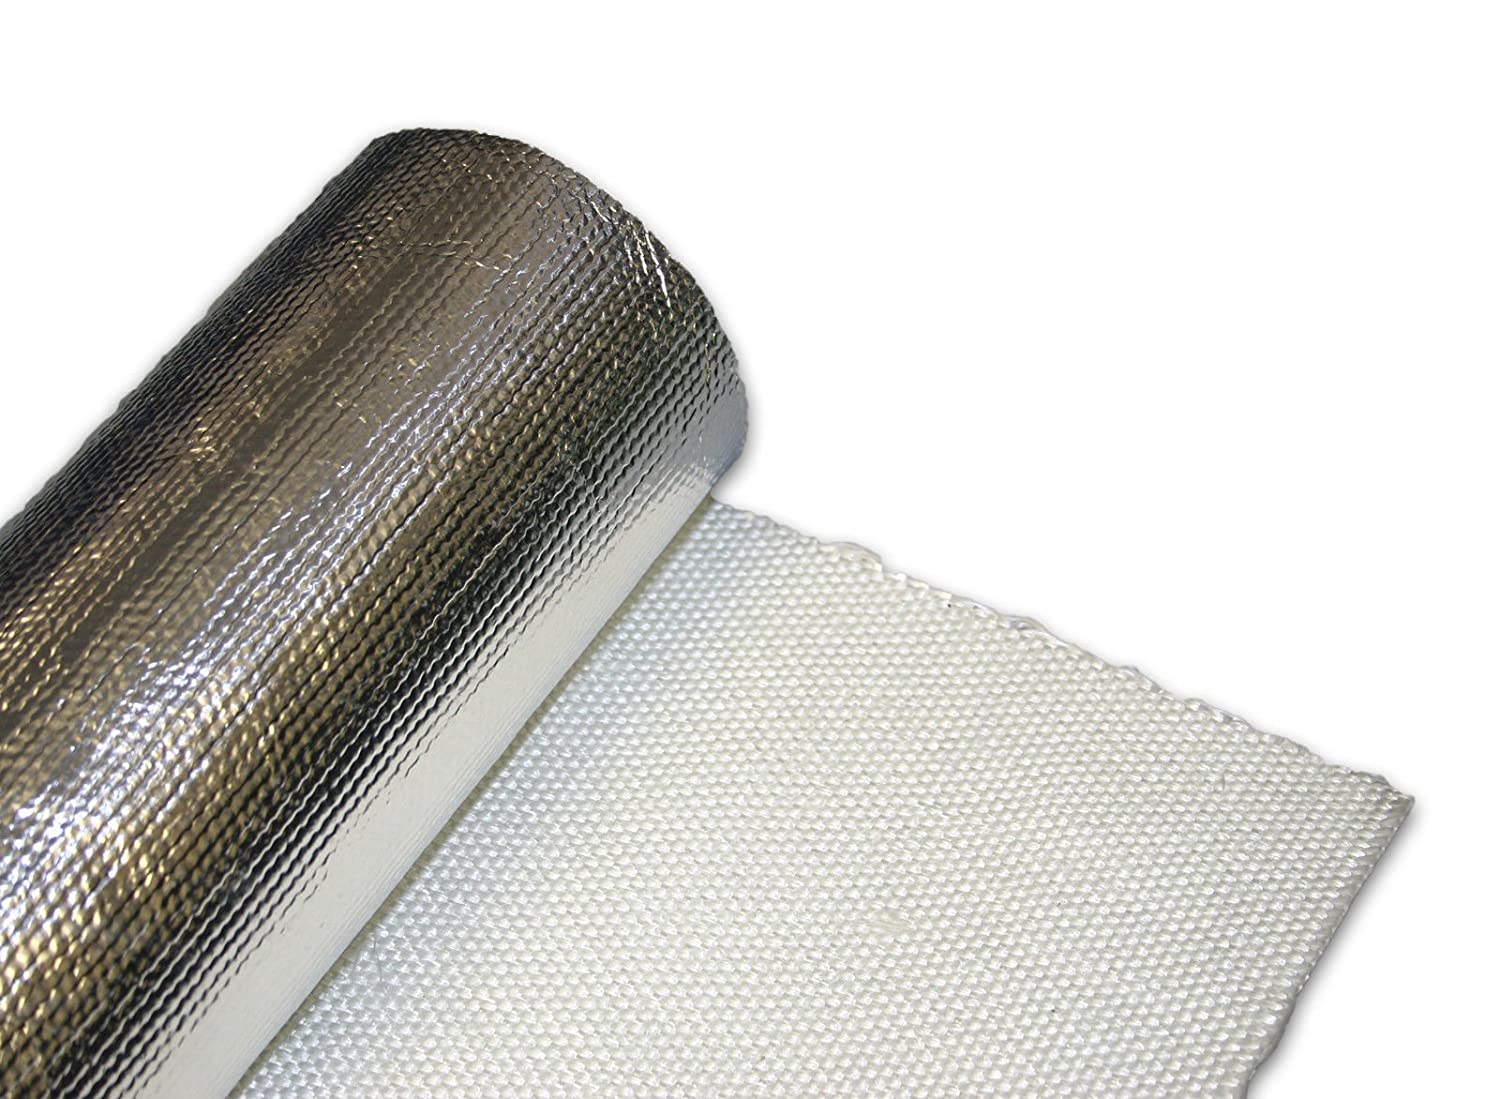 Exhaust/Engine Turbo Heat Shield Wrap Mat 1m x 500mm - Aluminised glass fibre cloth Camthorne